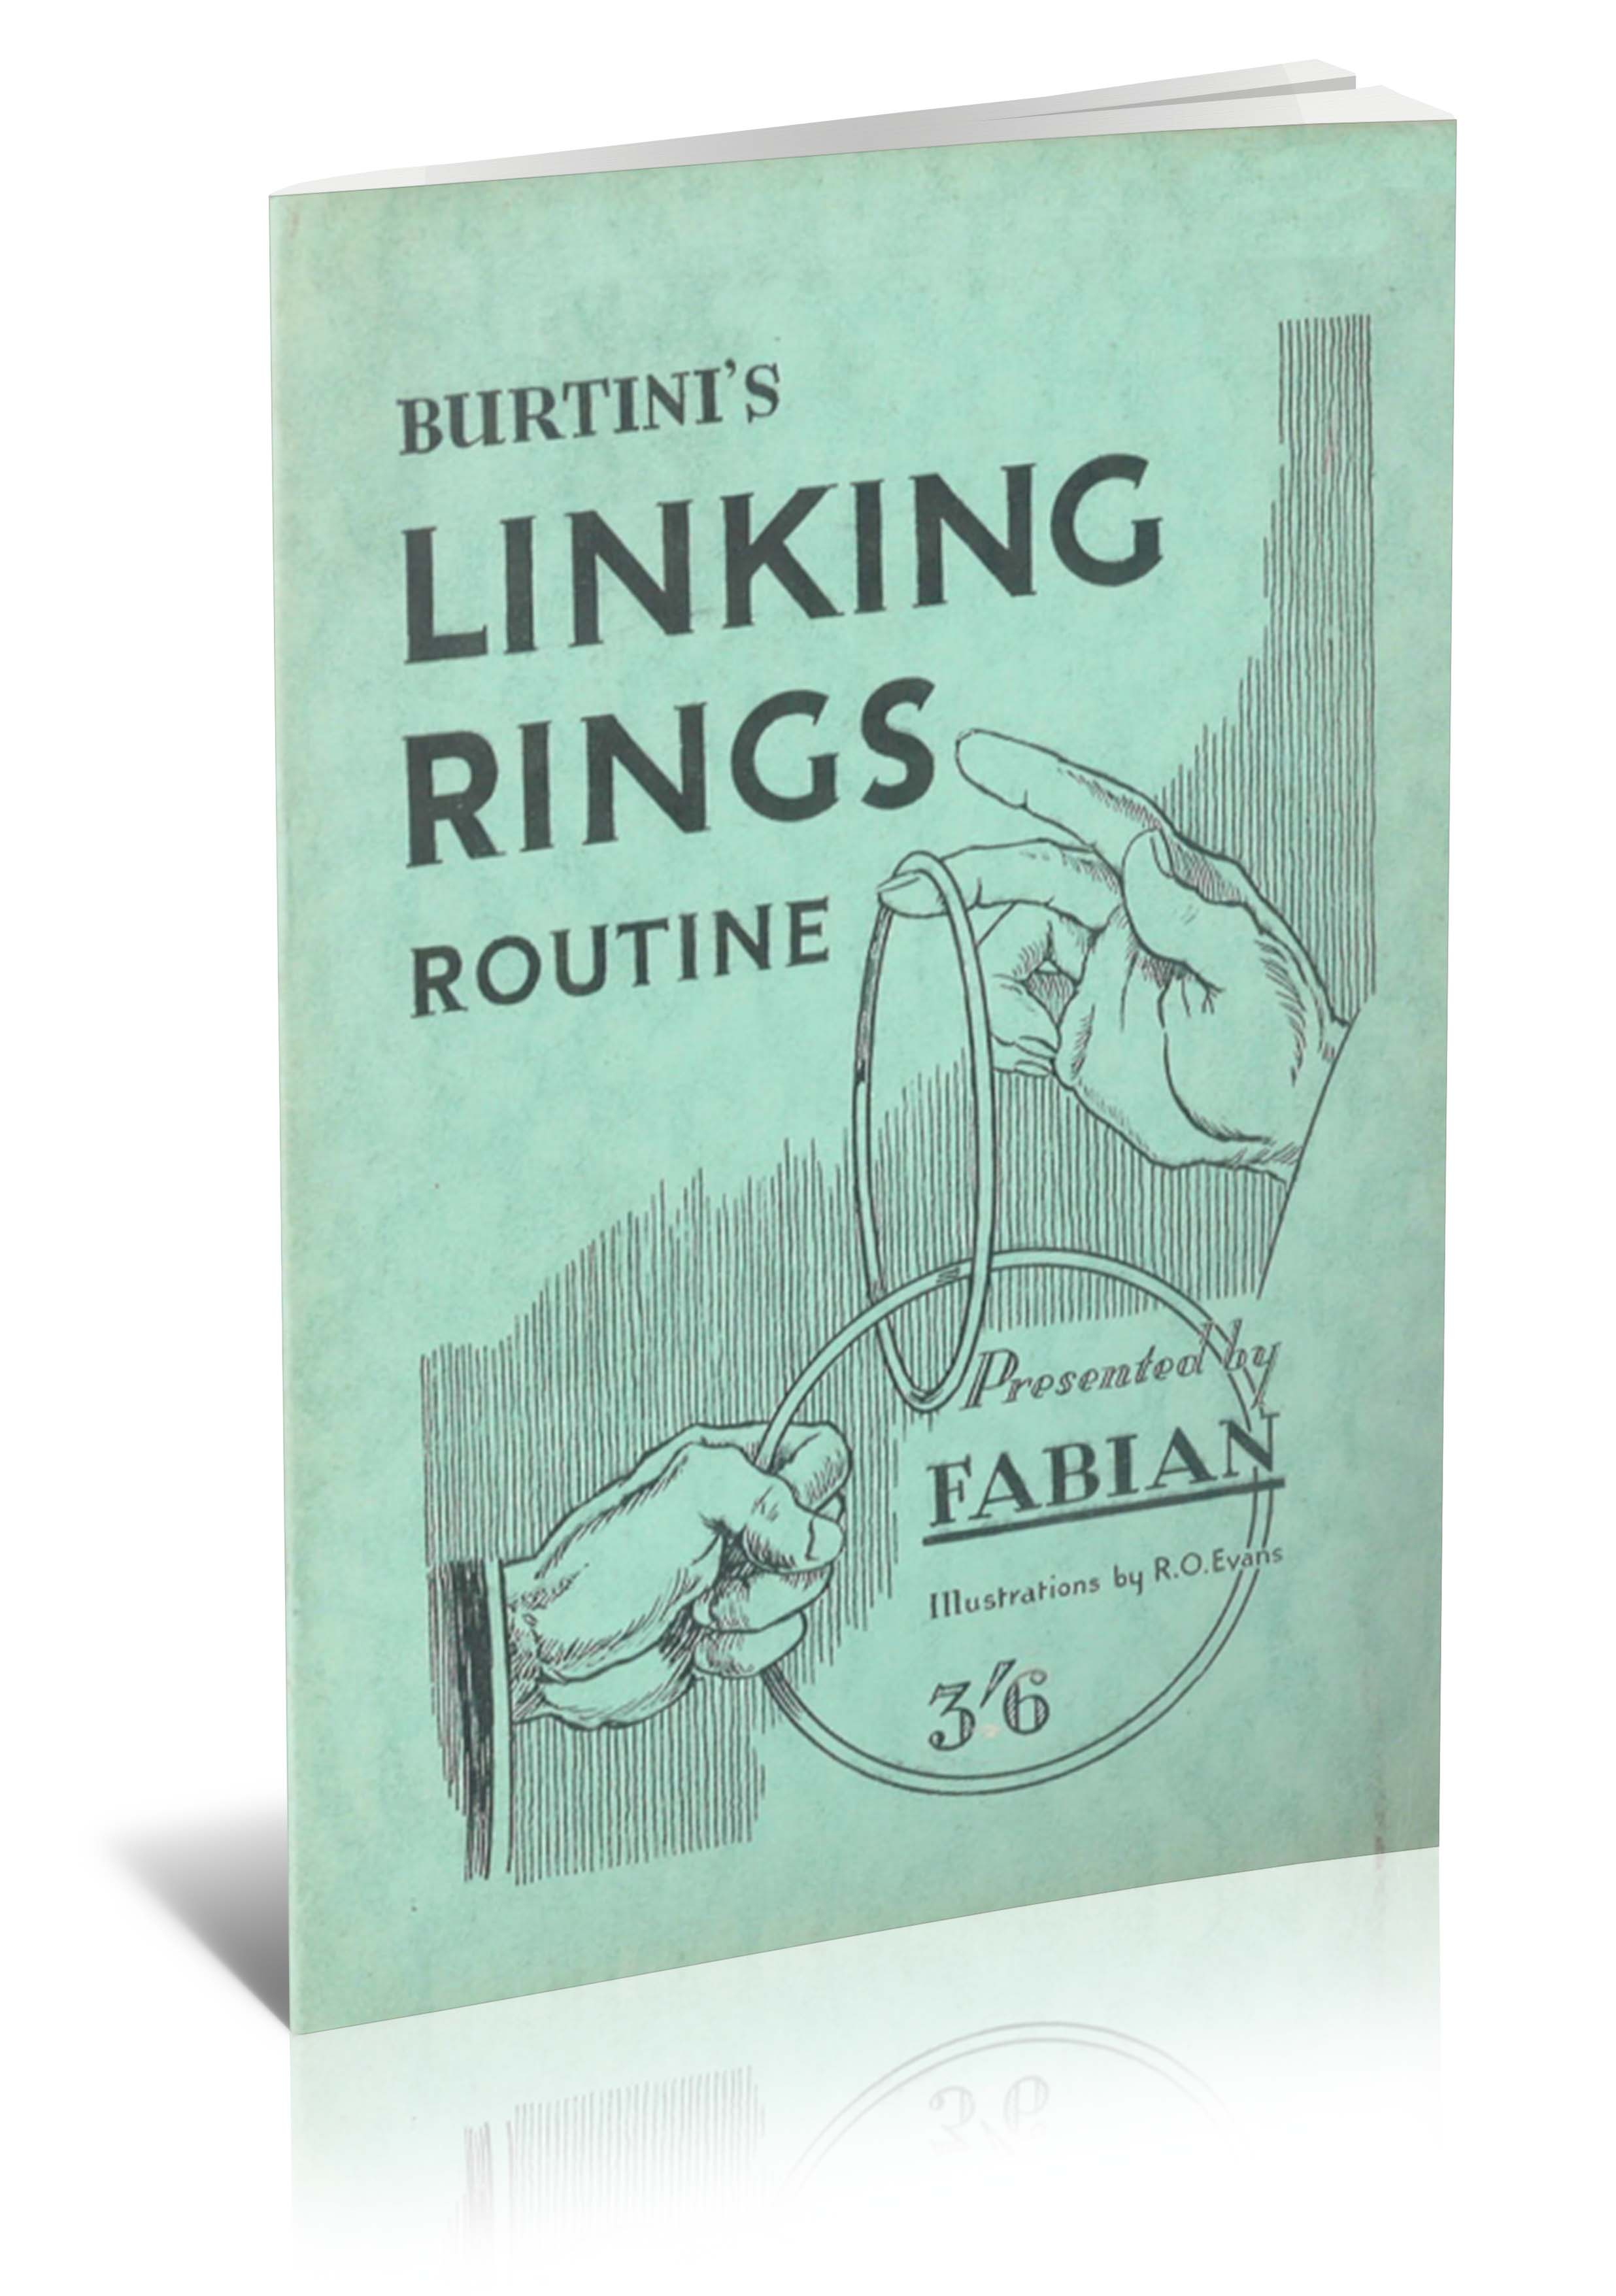 Fabian Burtini - Burtini's Linking Rings Routine (1947)